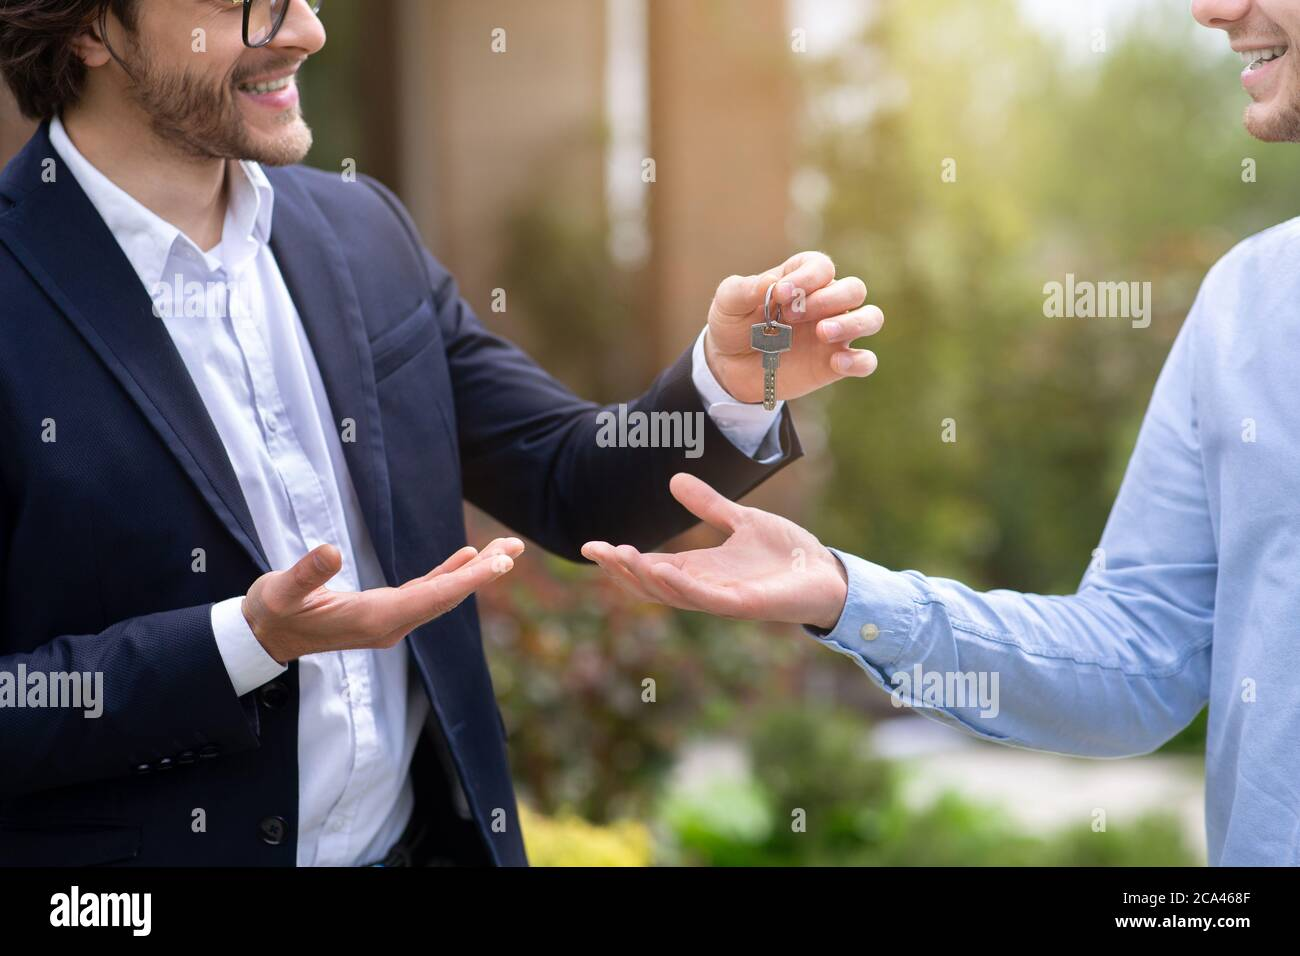 Cropped view of real estate agent giving house key to new home owner near his property, close up Stock Photo